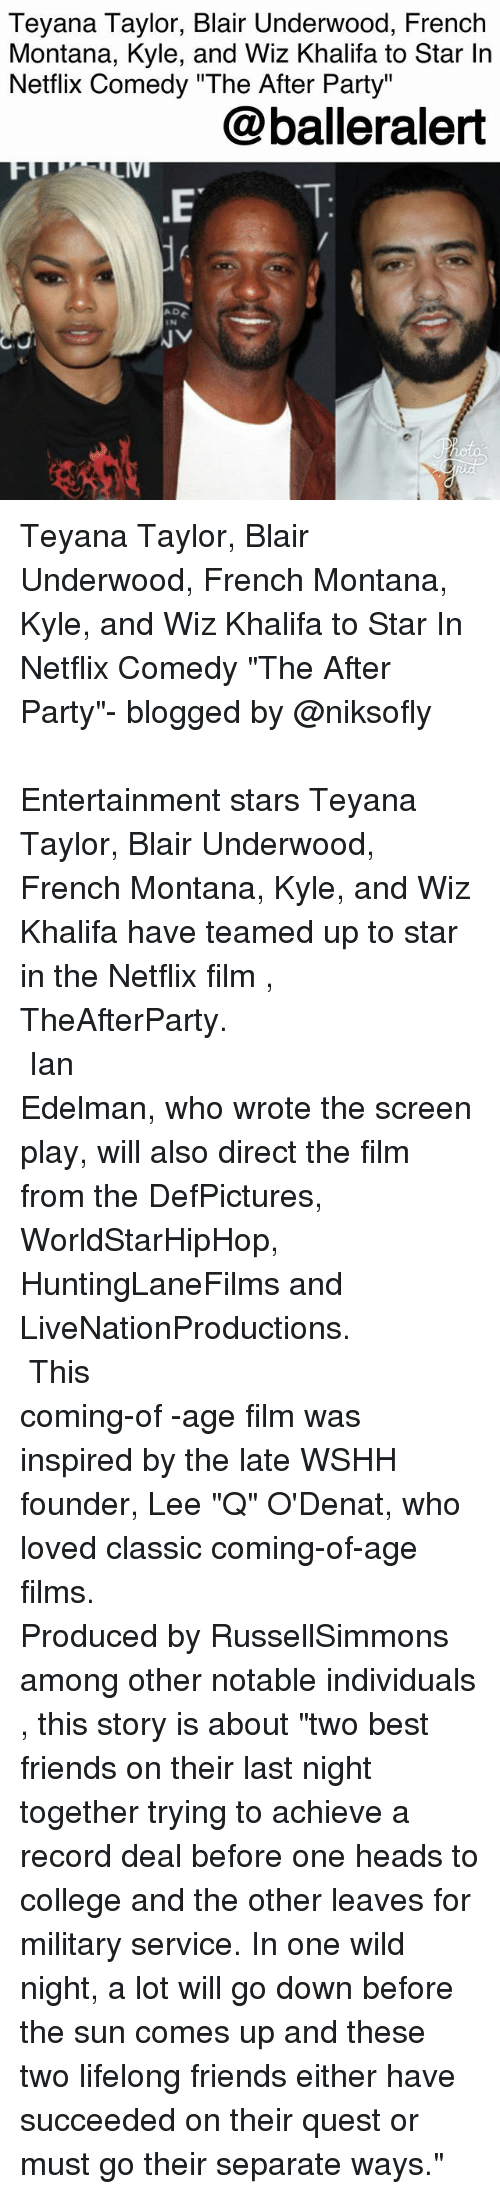 "College, Friends, and Memes: Teyana Taylor, Blair Underwood, French  Montana, Kyle, and Wiz Khalifa to Star In  Netflix Comedy ""The After Party""  @balleralert  A D  IN Teyana Taylor, Blair Underwood, French Montana, Kyle, and Wiz Khalifa to Star In Netflix Comedy ""The After Party""- blogged by @niksofly ⠀⠀⠀⠀⠀⠀⠀⠀⠀⠀⠀⠀⠀⠀⠀⠀⠀⠀⠀⠀⠀⠀⠀⠀⠀⠀⠀⠀⠀⠀⠀⠀⠀ Entertainment stars Teyana Taylor, Blair Underwood, French Montana, Kyle, and Wiz Khalifa have teamed up to star in the Netflix film , TheAfterParty. ⠀⠀⠀⠀⠀⠀⠀⠀⠀⠀⠀⠀⠀⠀⠀⠀⠀⠀⠀⠀⠀⠀⠀⠀⠀⠀⠀⠀⠀⠀⠀⠀⠀ Ian Edelman, who wrote the screen play, will also direct the film from the DefPictures, WorldStarHipHop, HuntingLaneFilms and LiveNationProductions. ⠀⠀⠀⠀⠀⠀⠀⠀⠀⠀⠀⠀⠀⠀⠀⠀⠀⠀⠀⠀⠀⠀⠀⠀⠀⠀⠀⠀⠀⠀⠀⠀⠀ This coming-of -age film was inspired by the late WSHH founder, Lee ""Q"" O'Denat, who loved classic coming-of-age films. ⠀⠀⠀⠀⠀⠀⠀⠀⠀⠀⠀⠀⠀⠀⠀⠀⠀⠀⠀⠀⠀⠀⠀⠀⠀⠀⠀⠀⠀⠀⠀⠀⠀ Produced by RussellSimmons among other notable individuals , this story is about ""two best friends on their last night together trying to achieve a record deal before one heads to college and the other leaves for military service. In one wild night, a lot will go down before the sun comes up and these two lifelong friends either have succeeded on their quest or must go their separate ways."""